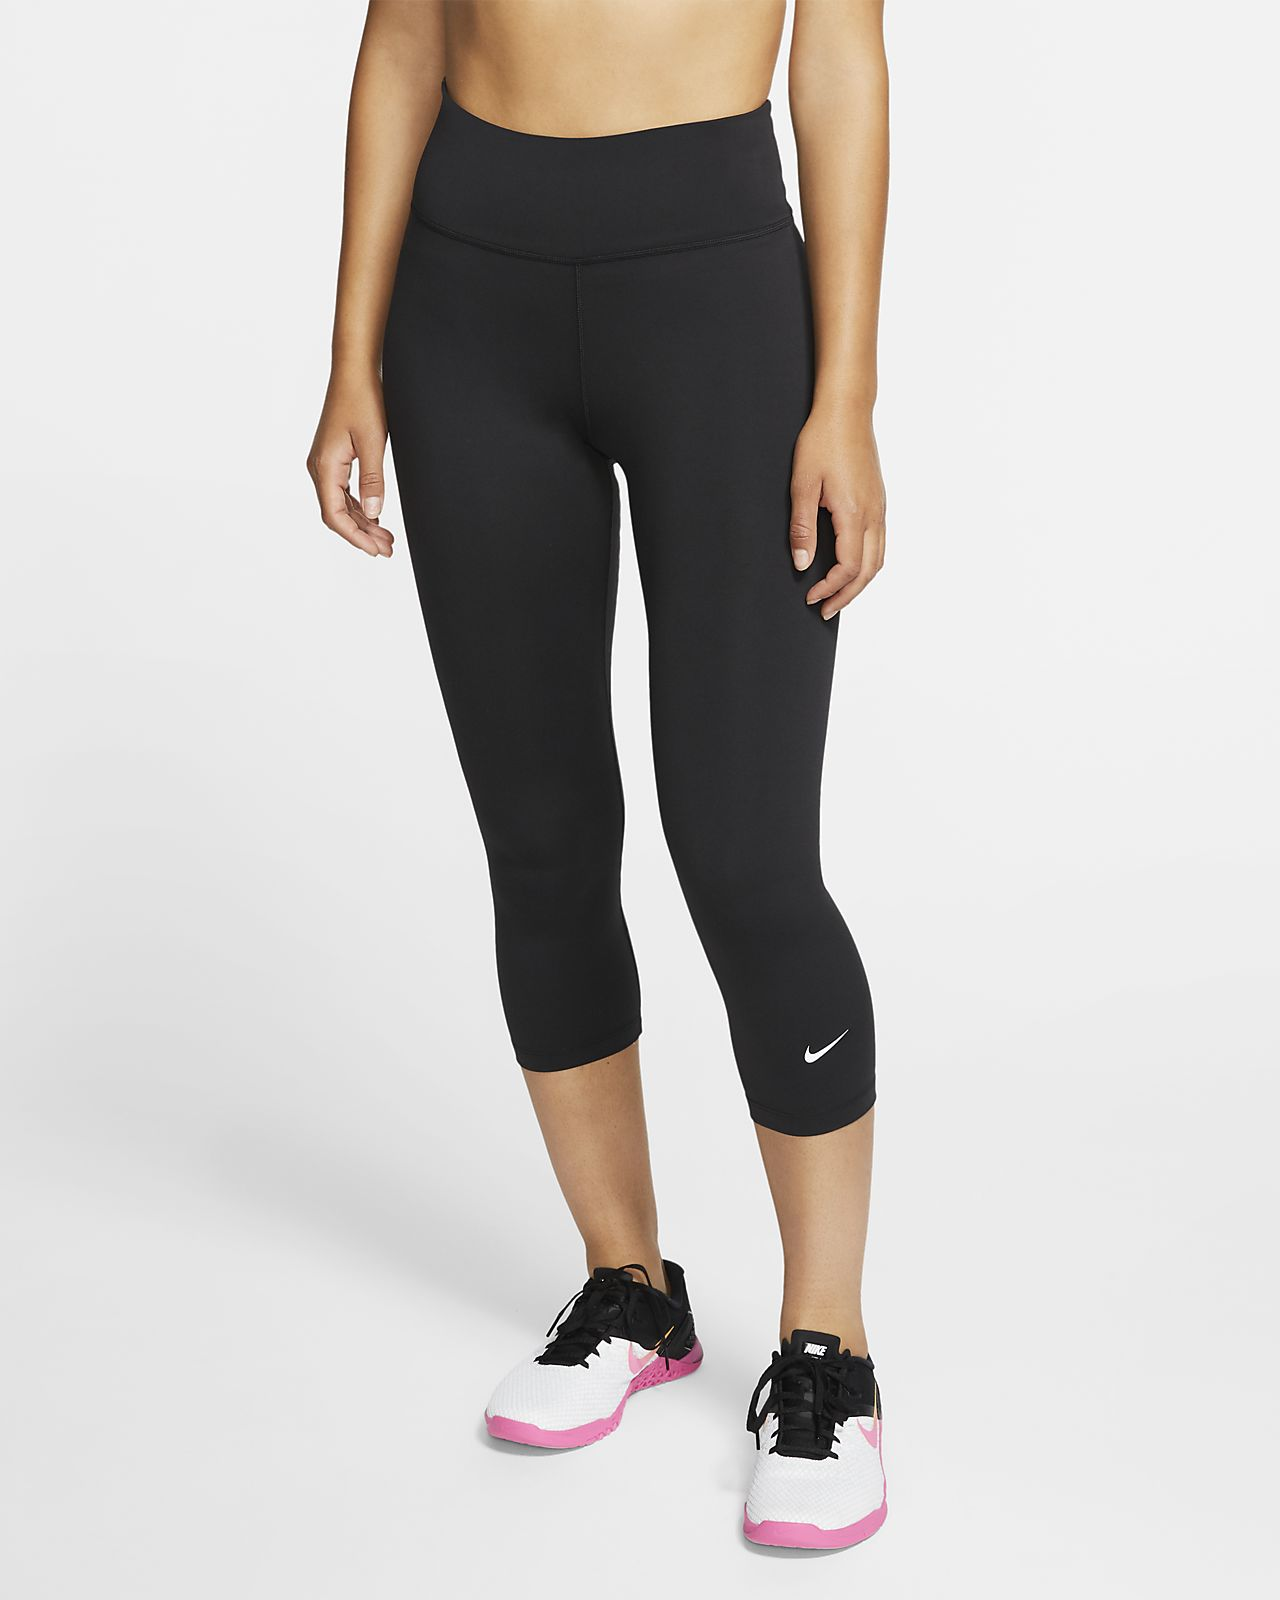 Nike One Damen-Caprihose